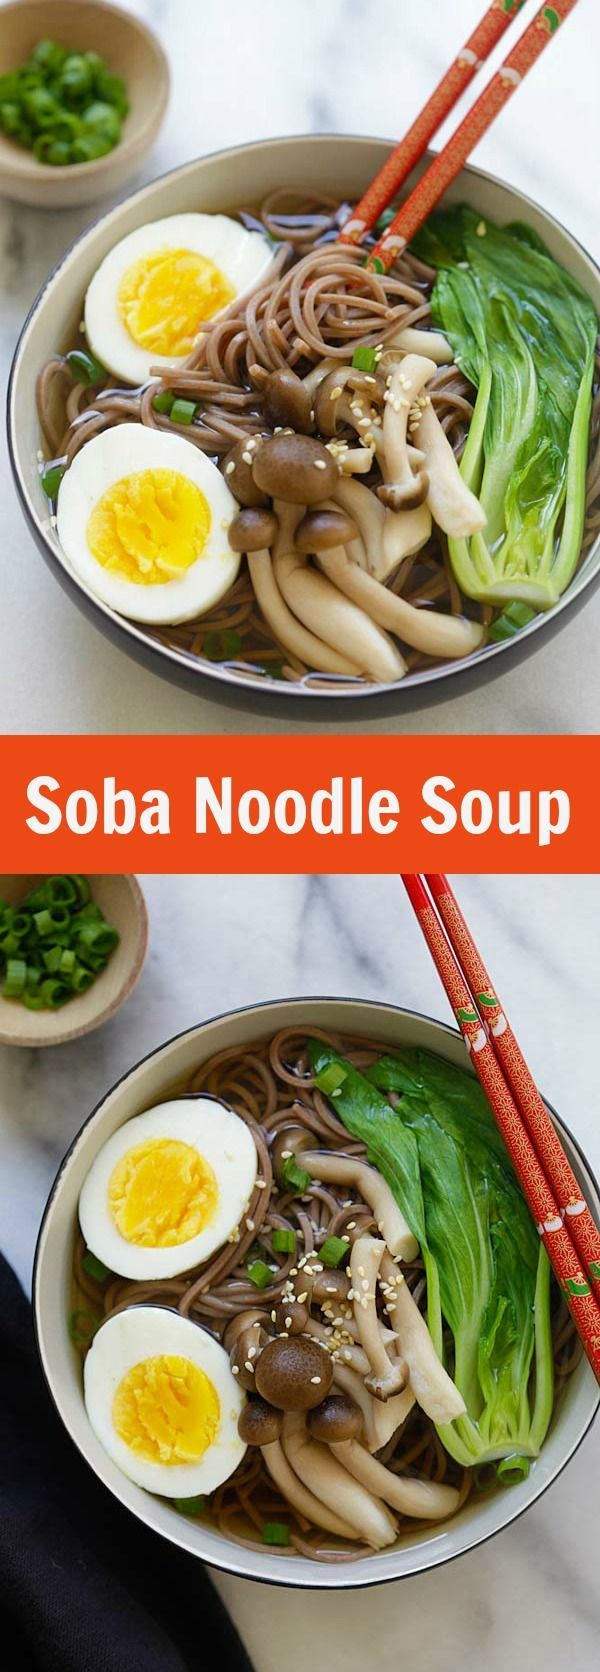 Soba Noodle Soup - the easiest and quickest Japanese soba noodle soup ever. Takes 15 minutes and restaurant quality, so delicious